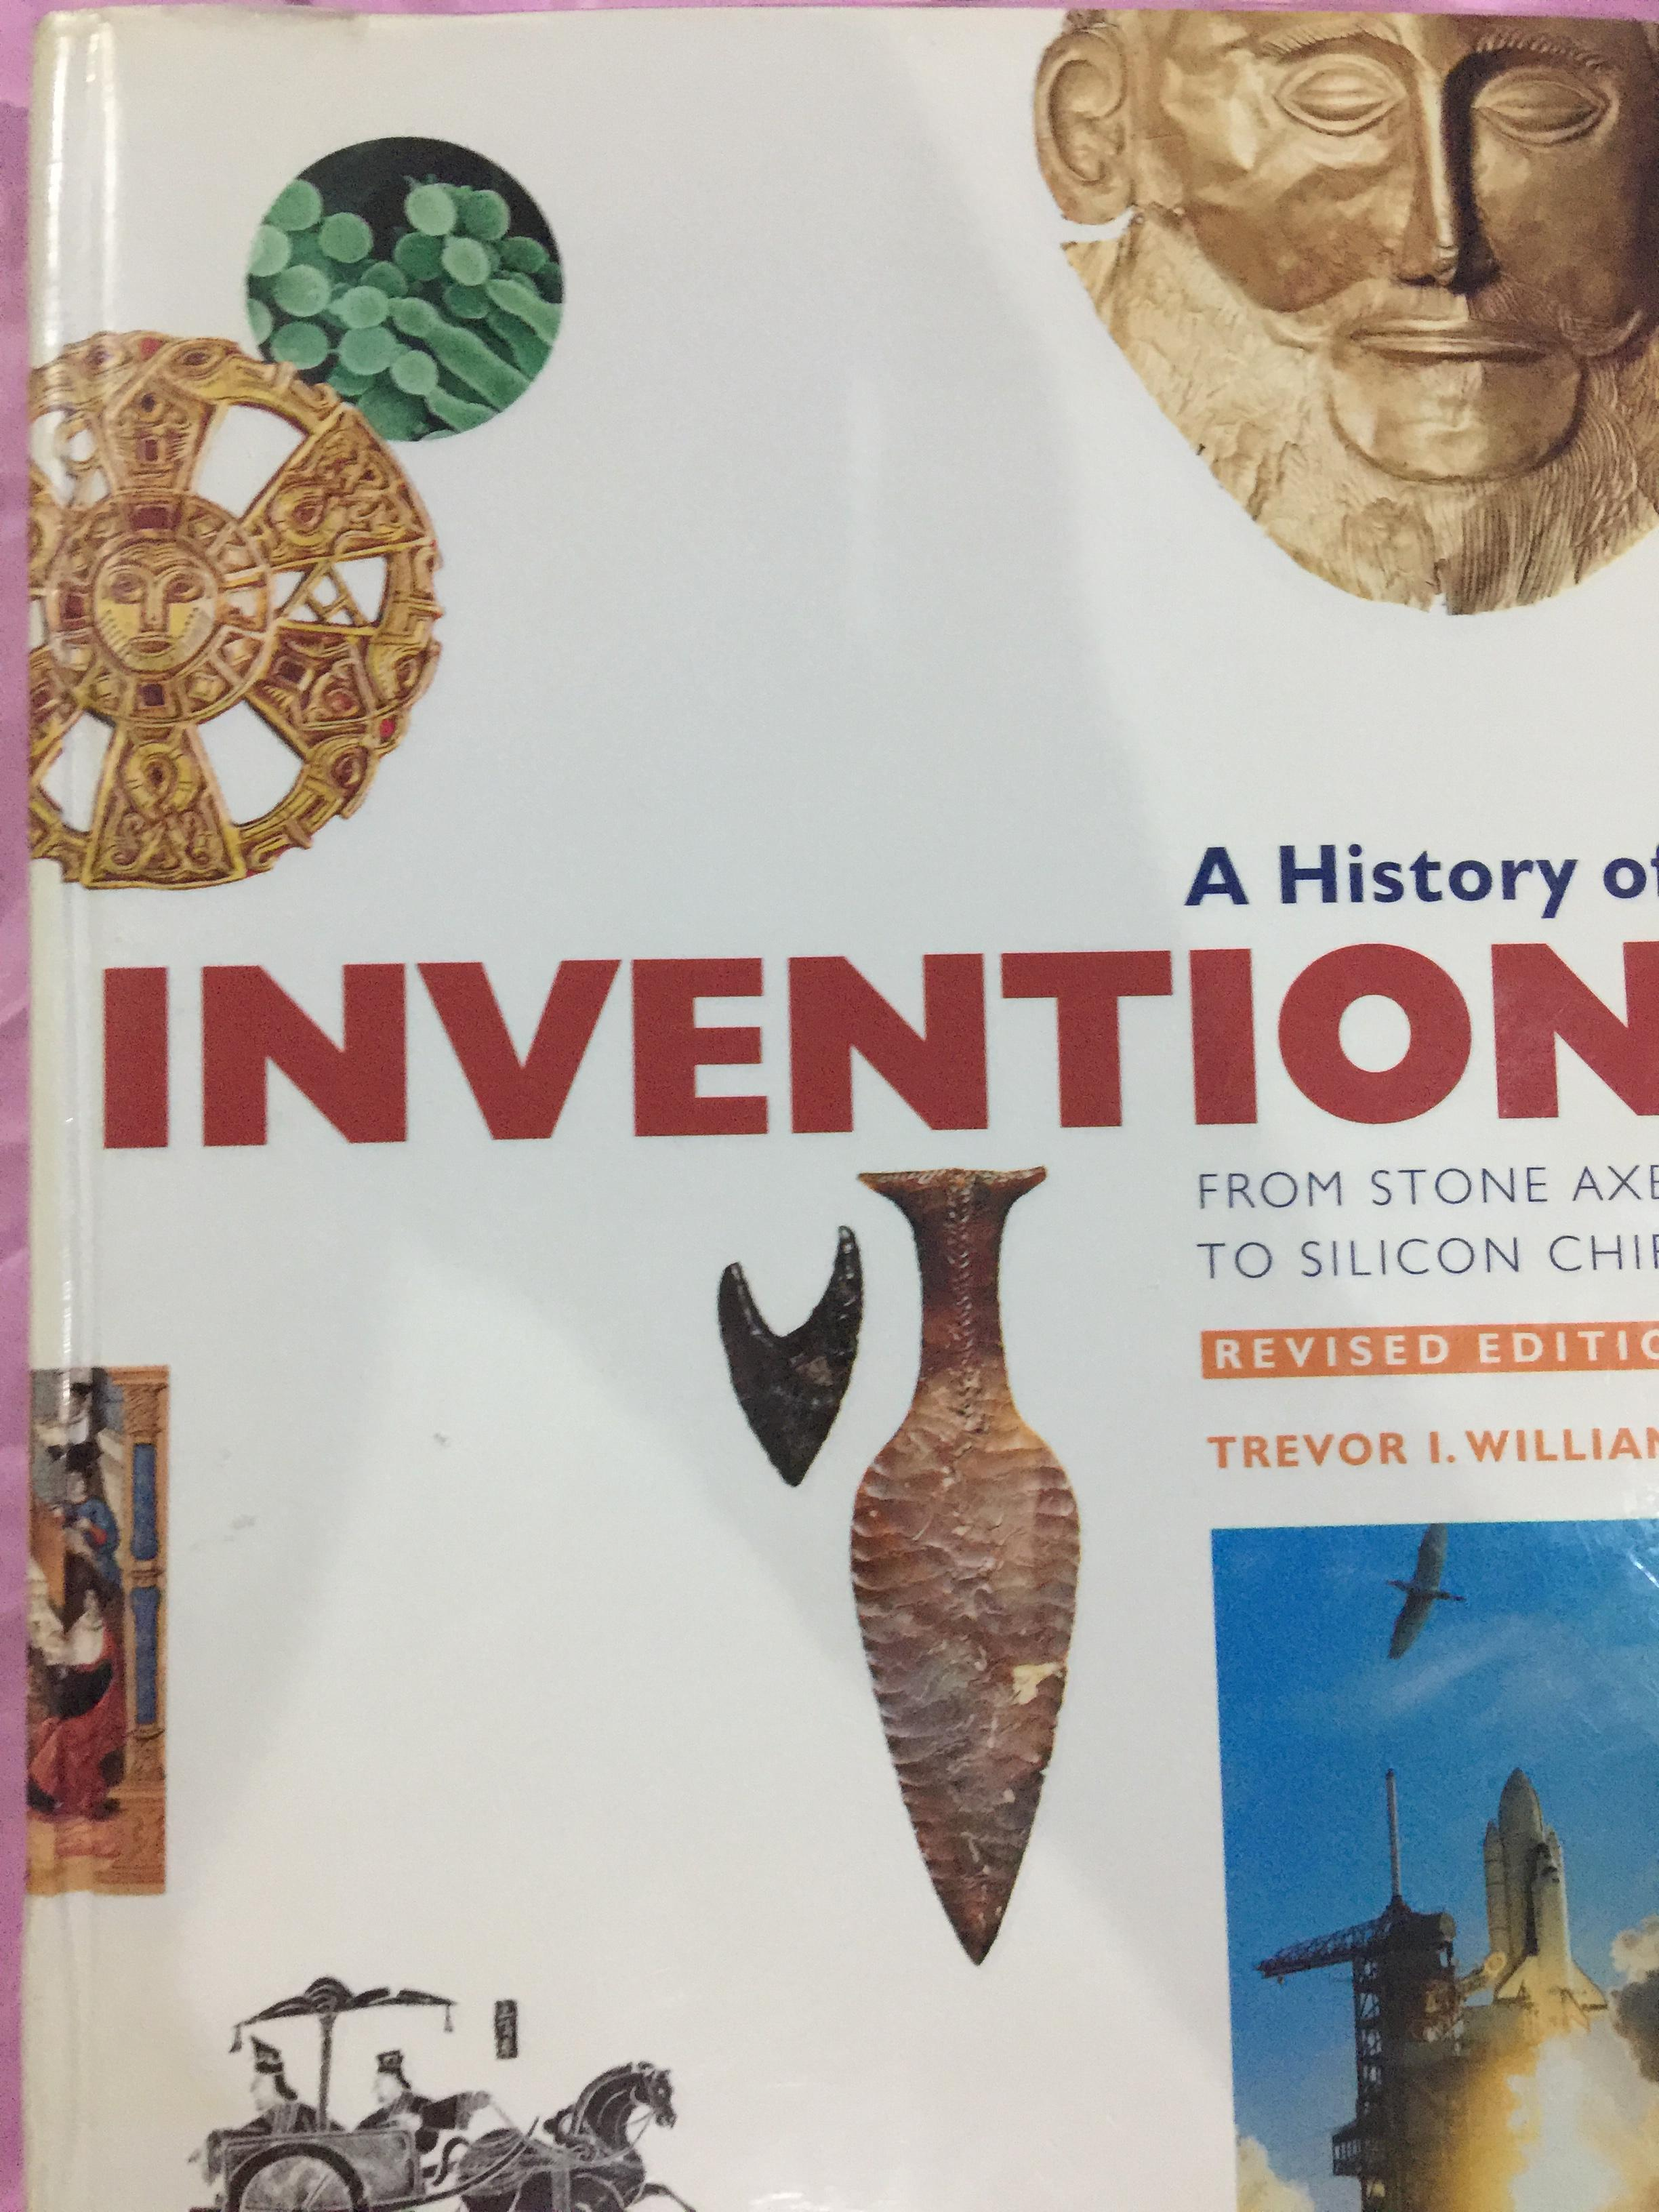 A History of INVENTION from stone axes to silicon chips. ผู้เขียน. Tremor I. Williams